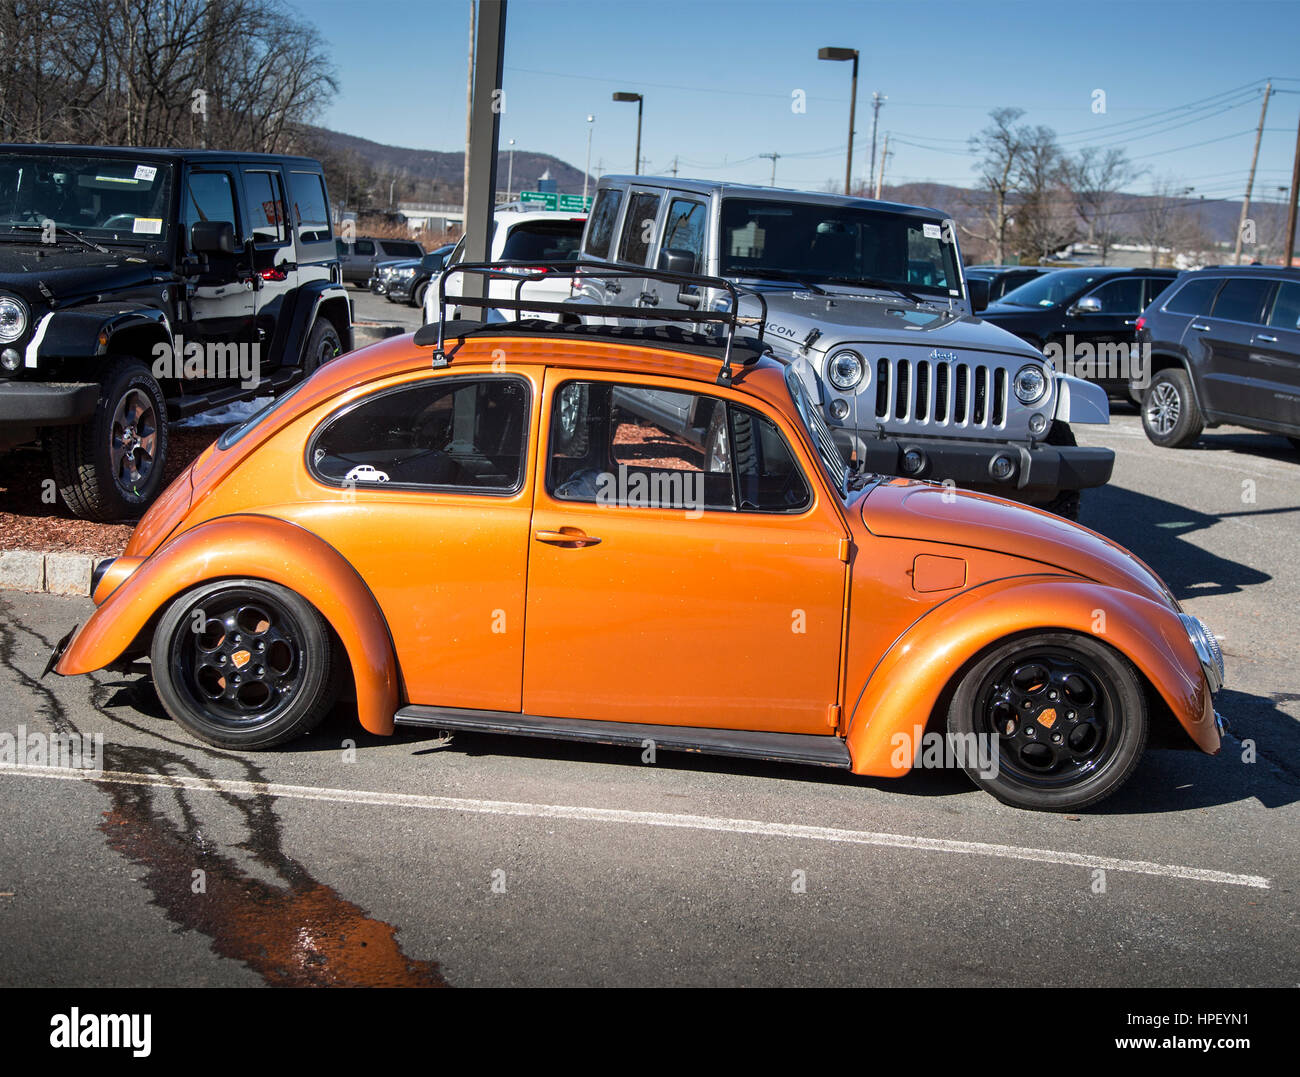 Customized Volkswagen Beetle High Resolution Stock Photography And Images Alamy